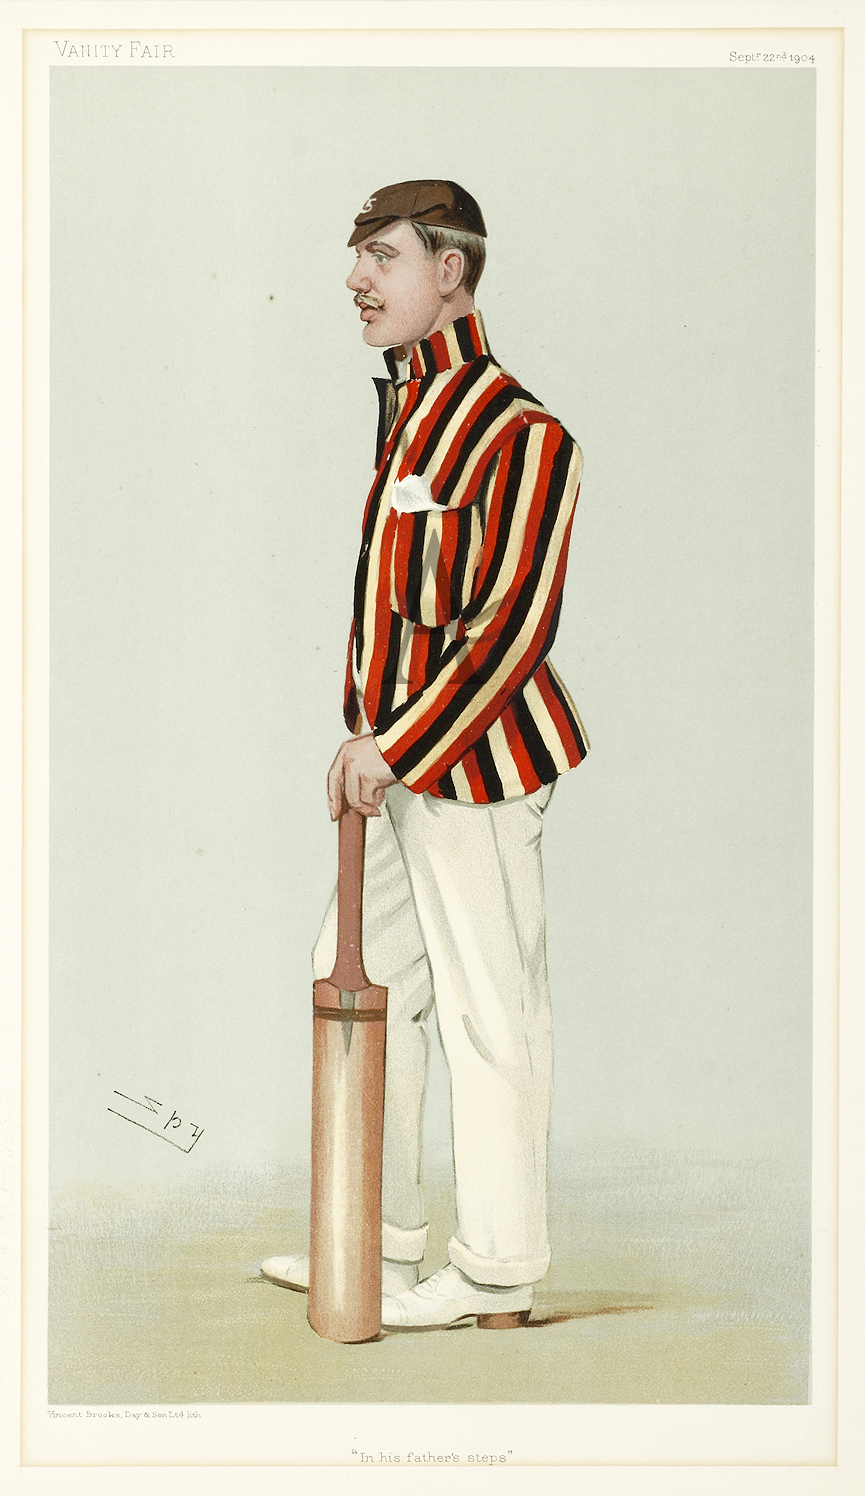 Edwardian sporting gear